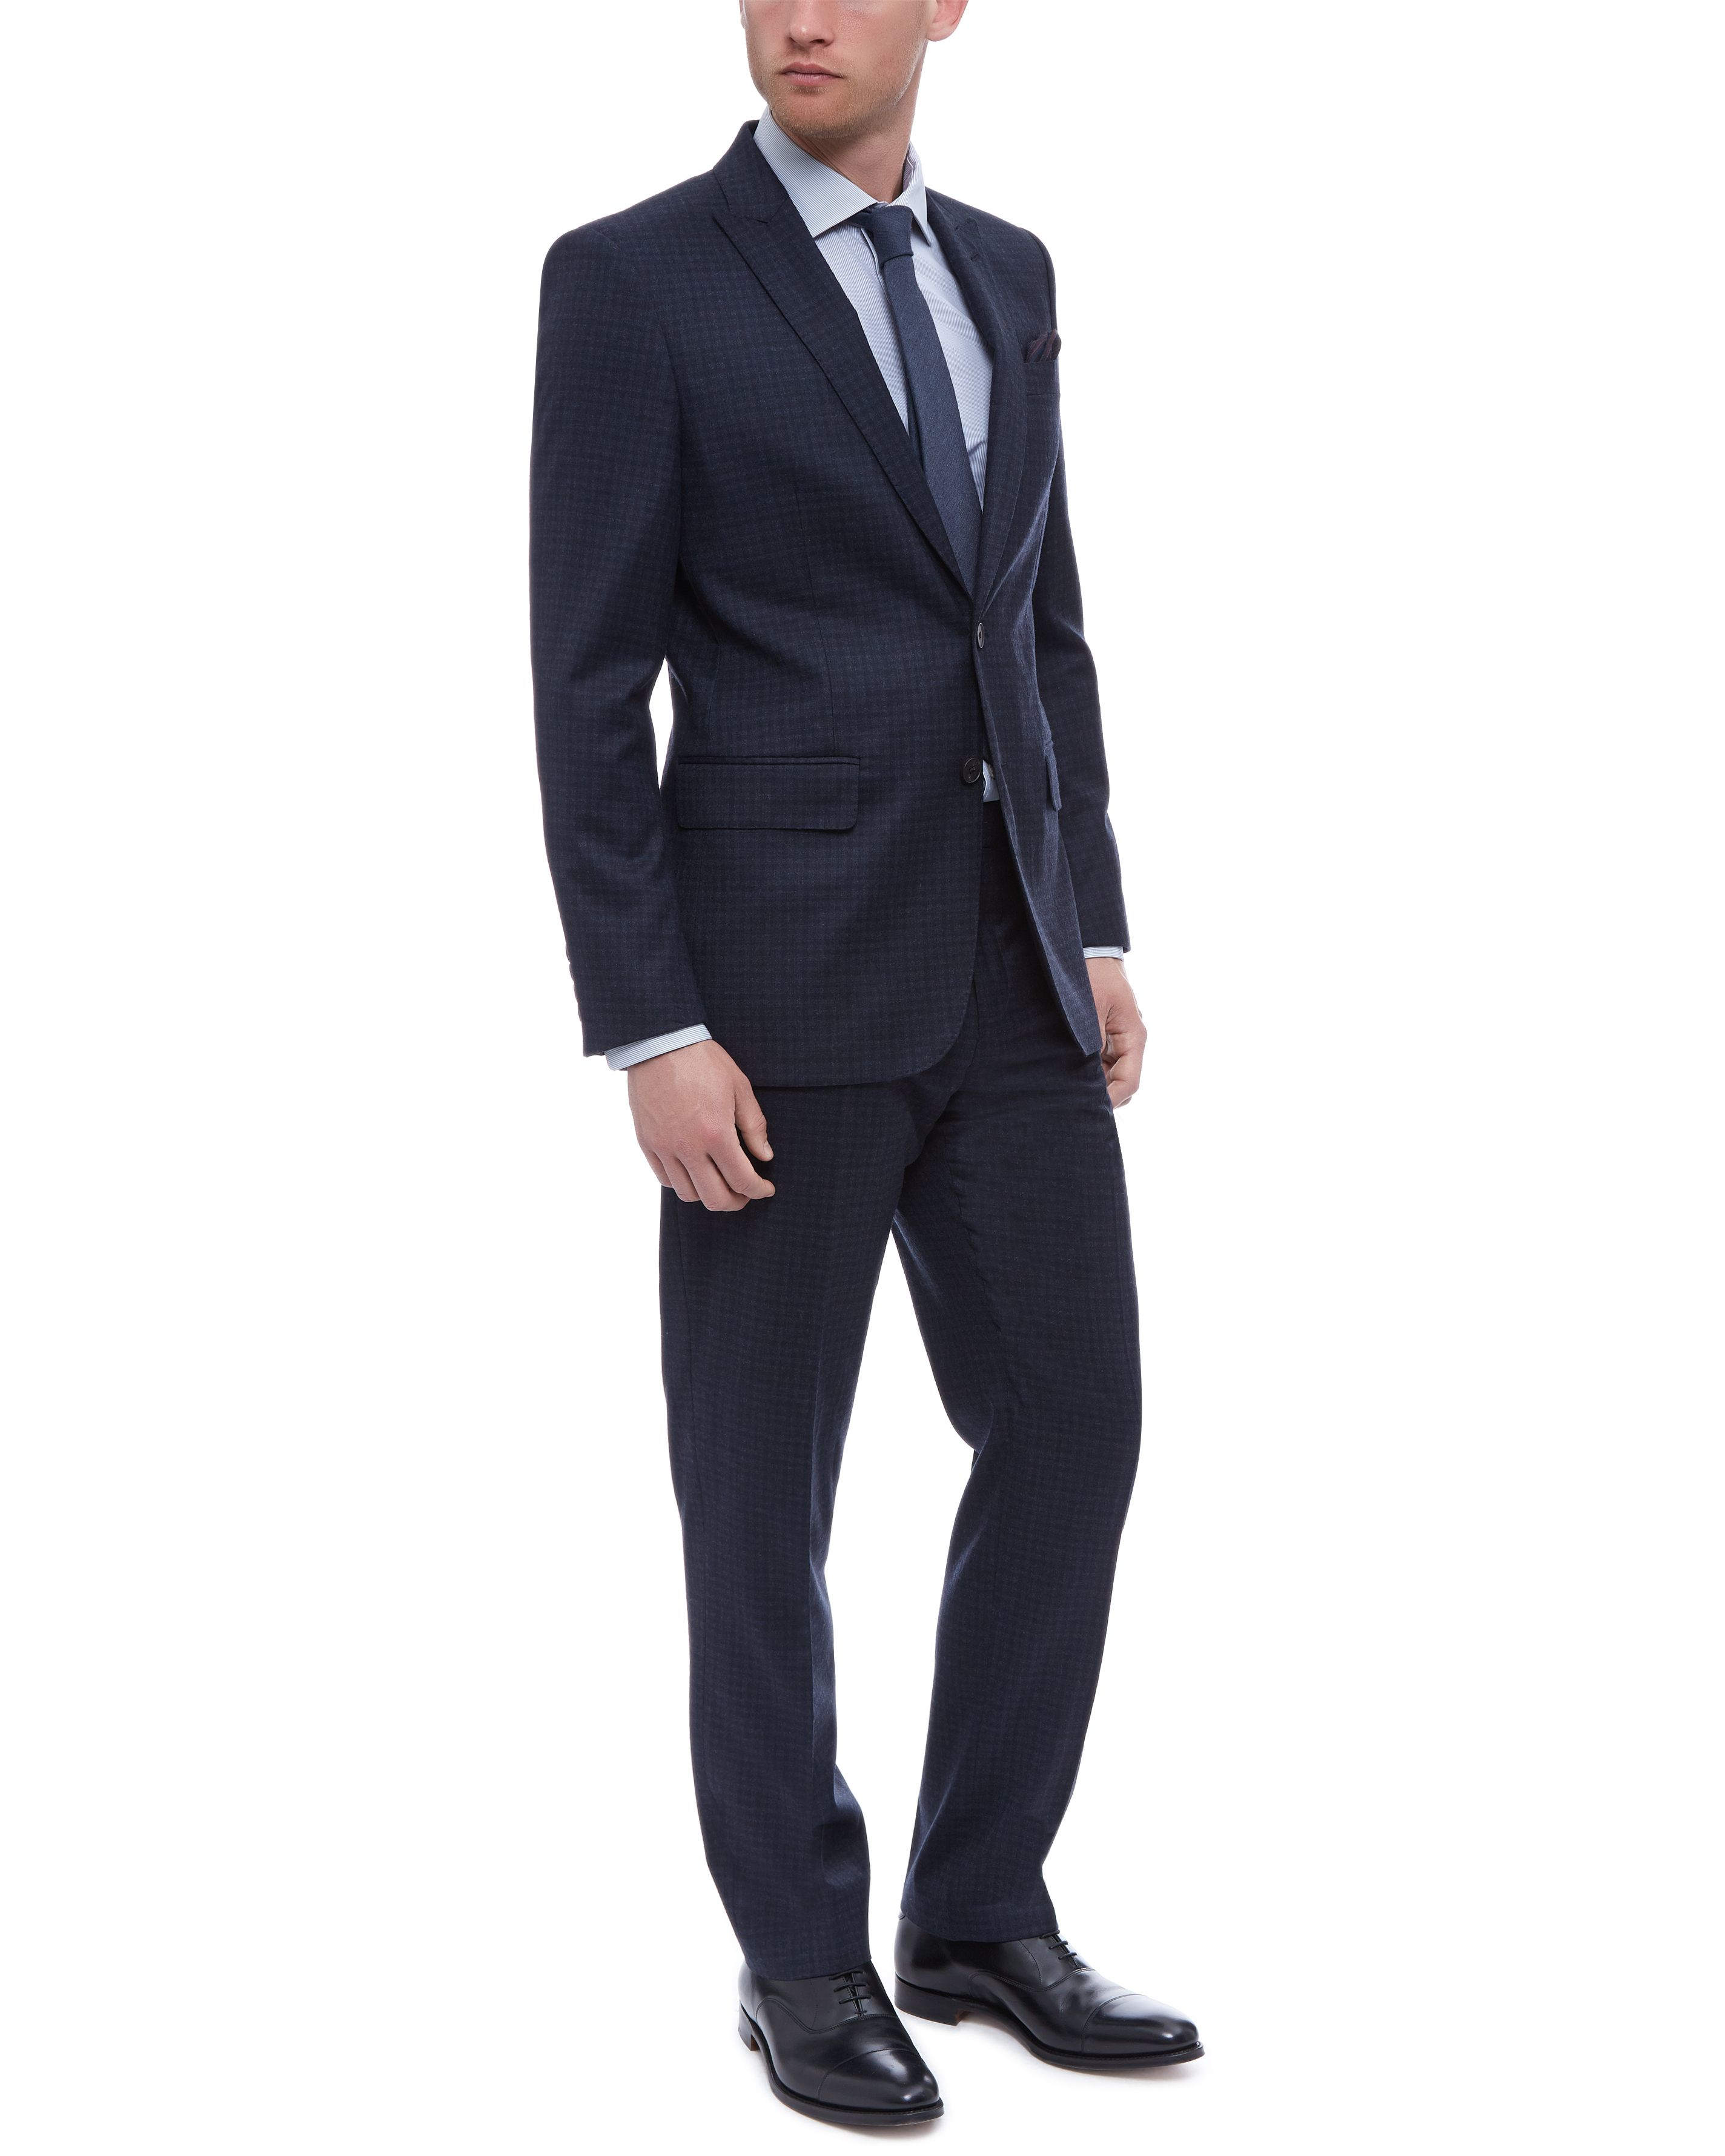 Jaeger Wool Faded Check Suit in Navy (Blue) for Men